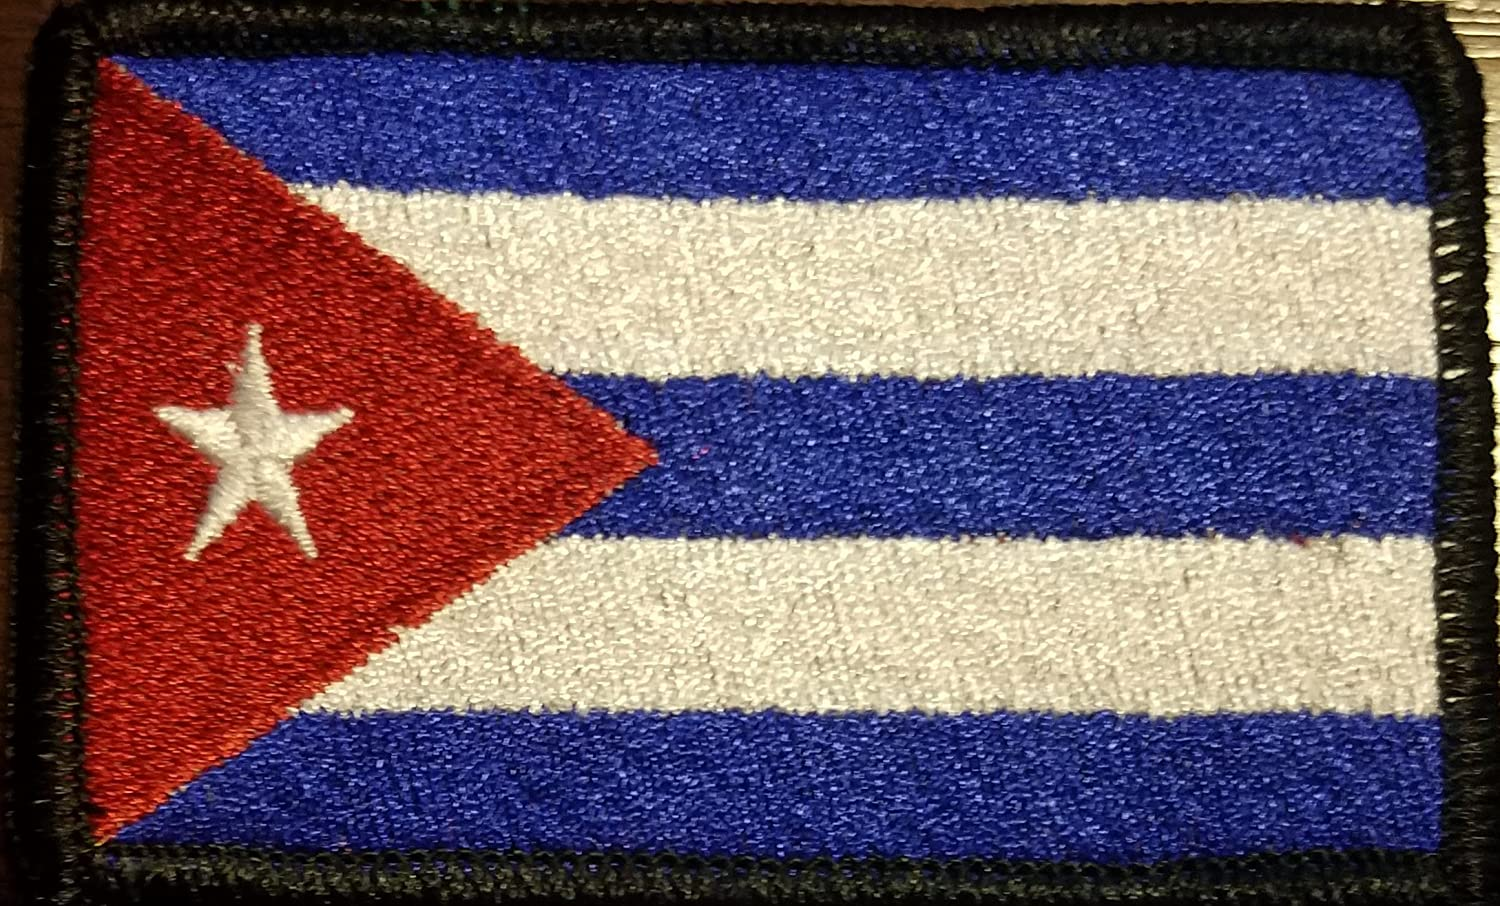 Cuba National Flag Iron on Patches Embroidered Applique Badge Emblem